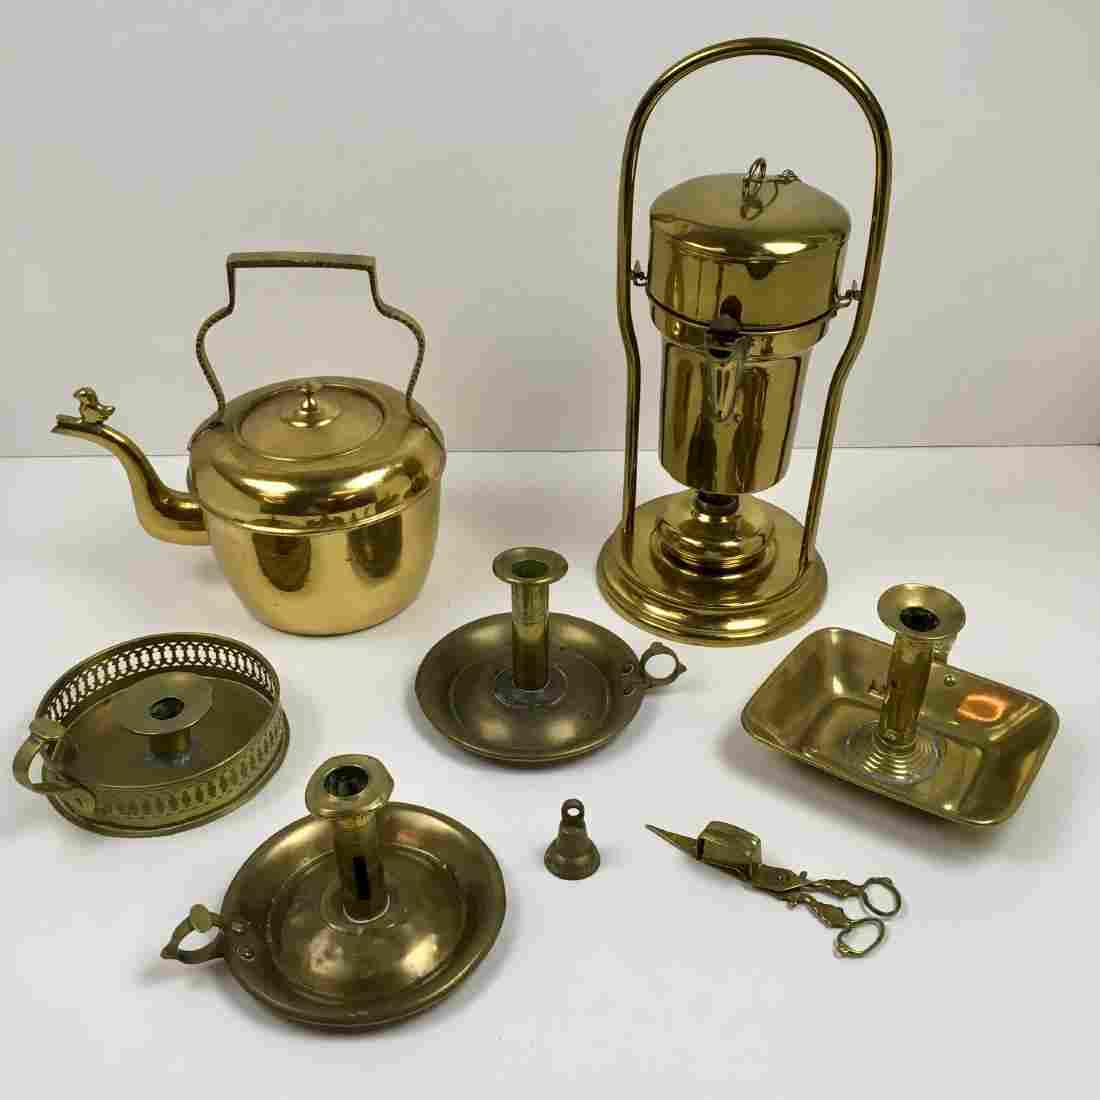 EIGHT PCS OF DECORATIVE BRASS